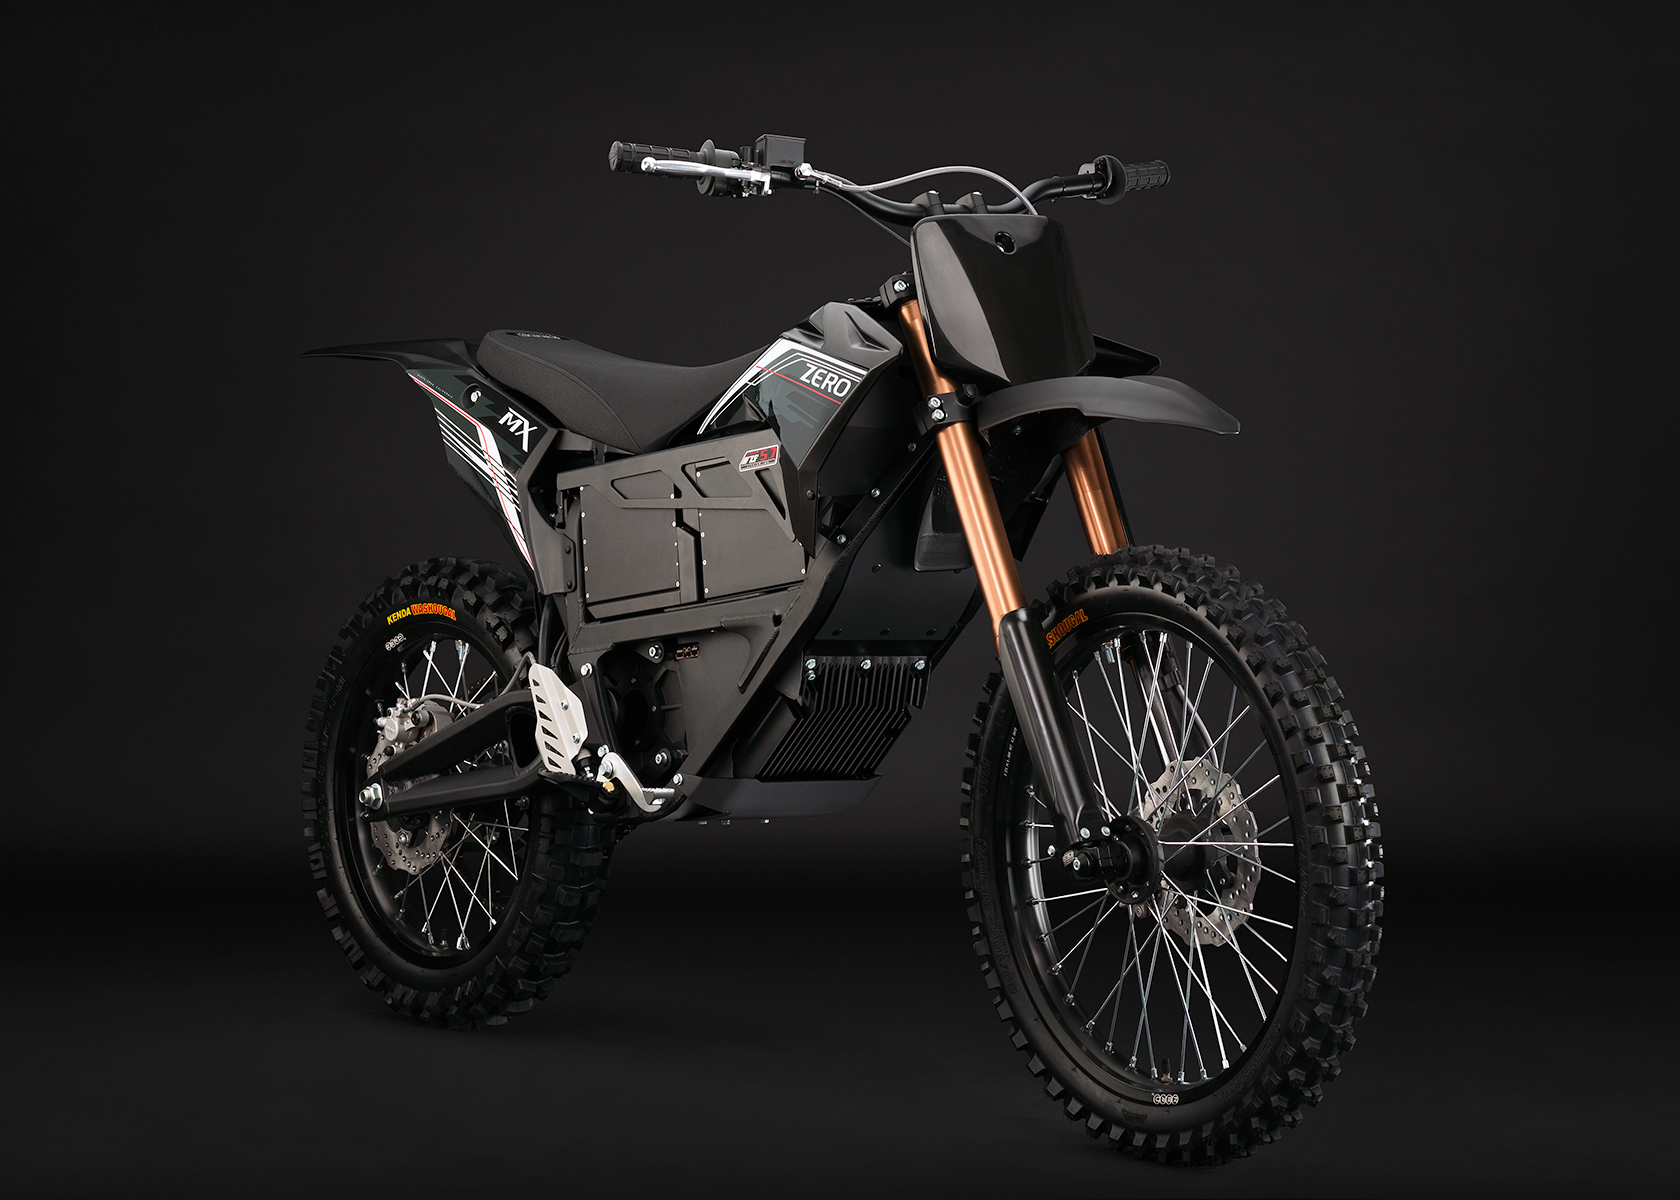 2013 Zero MX Electric Motorcycle: Black Angle Right